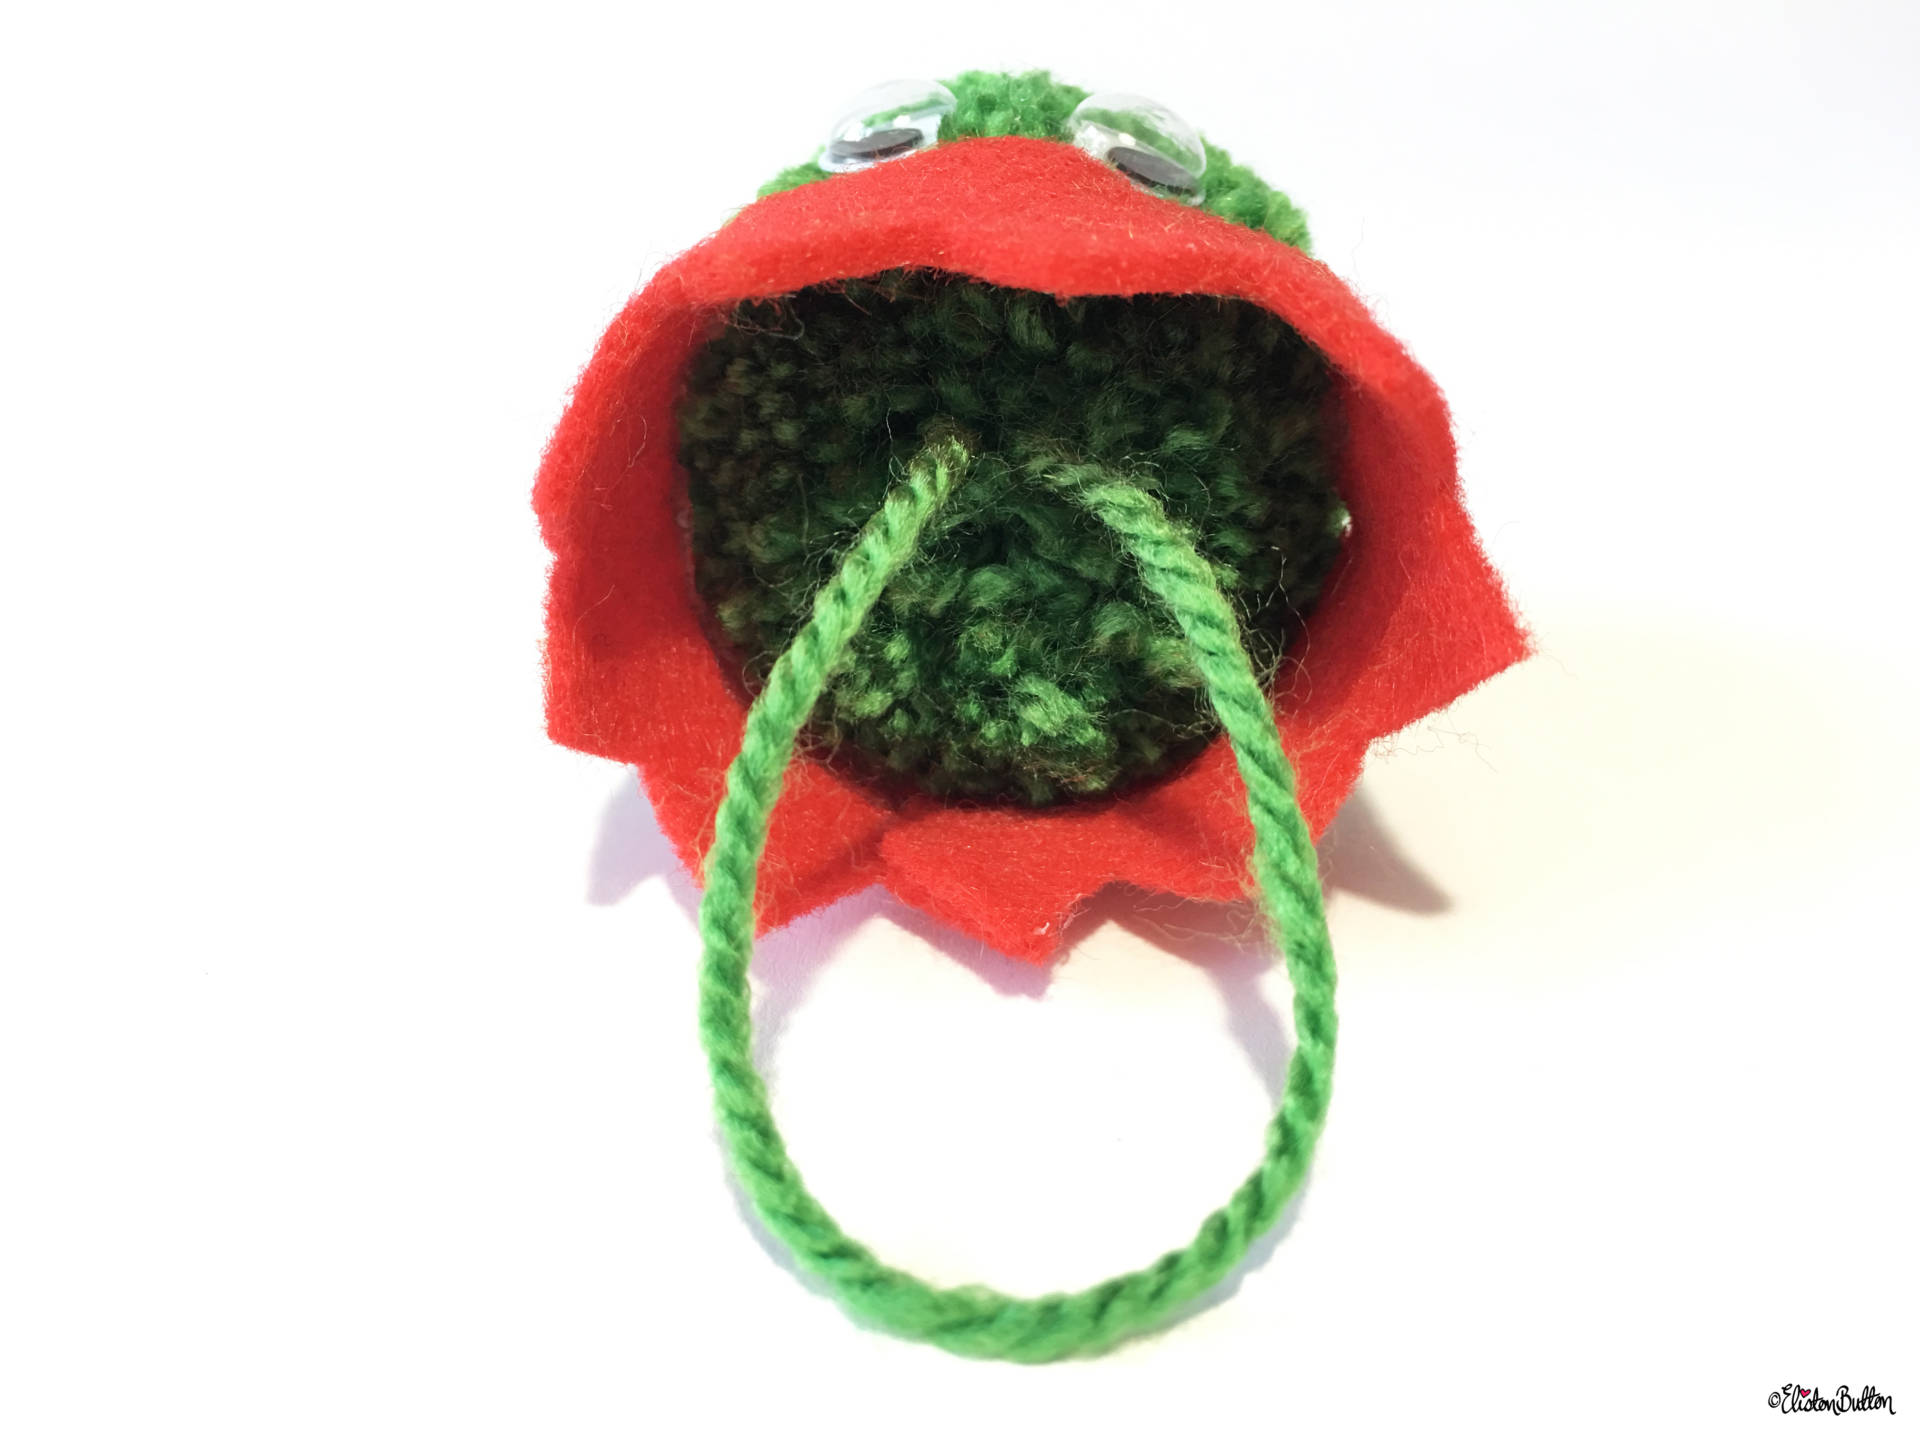 Dark Green, Red Party Hat Pom Pom Sprout Christmas Decoration - Hanging String - Create 30 - No. 8 & 9 - Christmas Sprout Garland and Decorations at www.elistonbutton.com - Eliston Button - That Crafty Kid – Art, Design, Craft & Adventure.